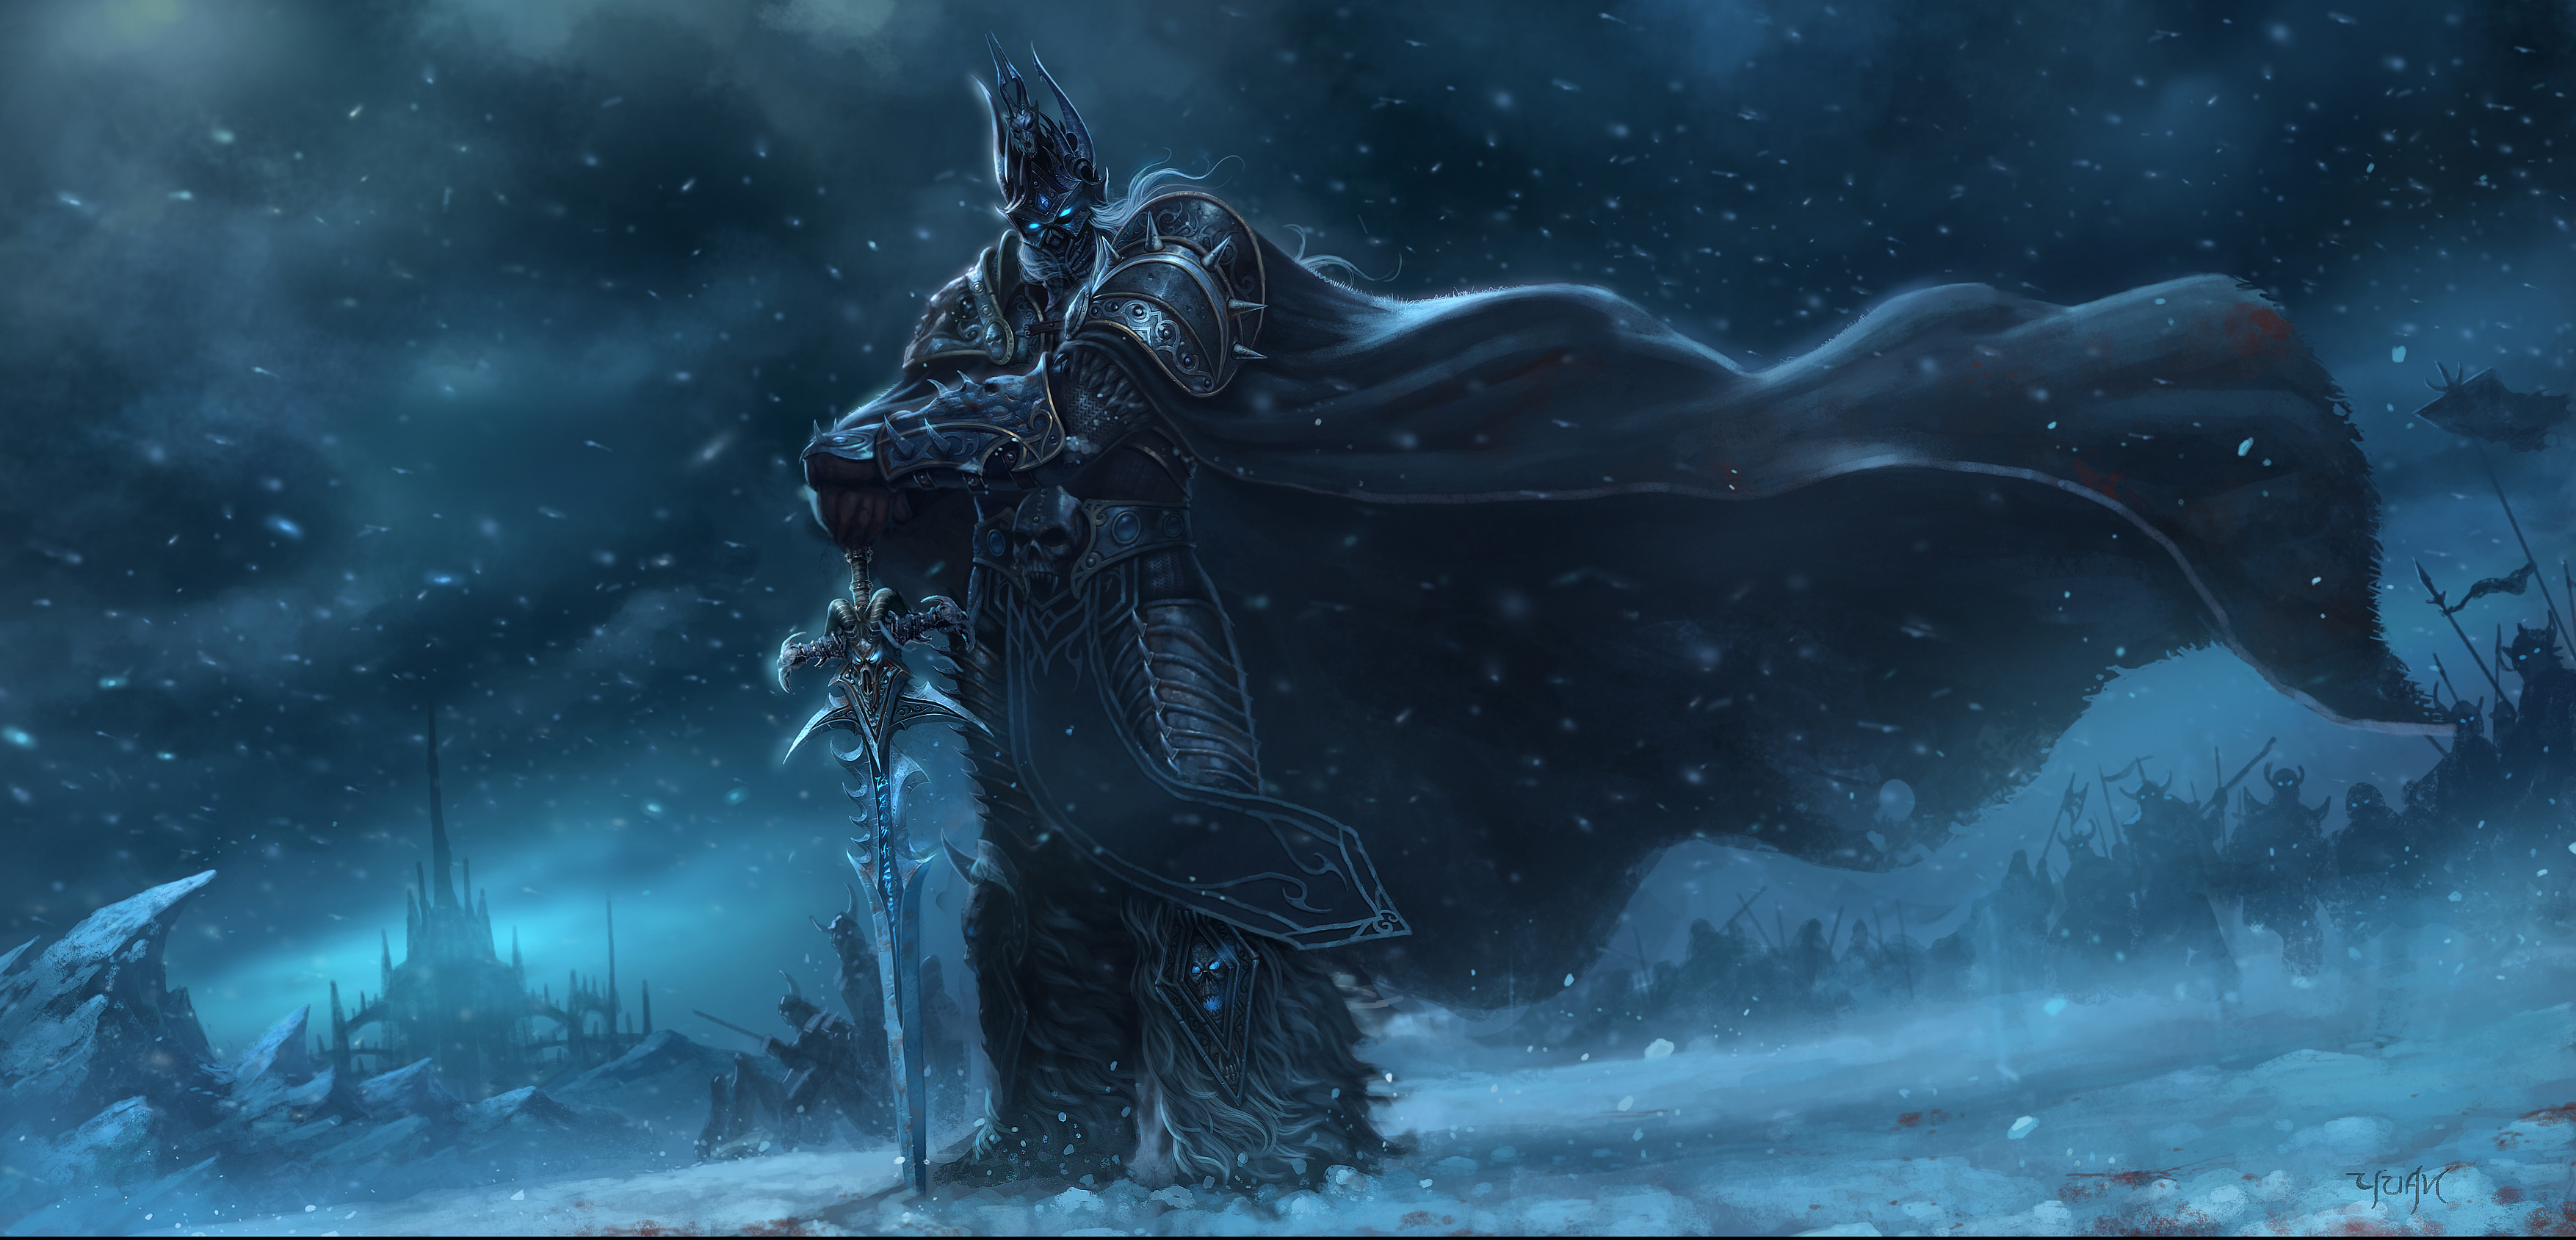 Wallpaper Arthas Menethil The Lich King 2d Digital